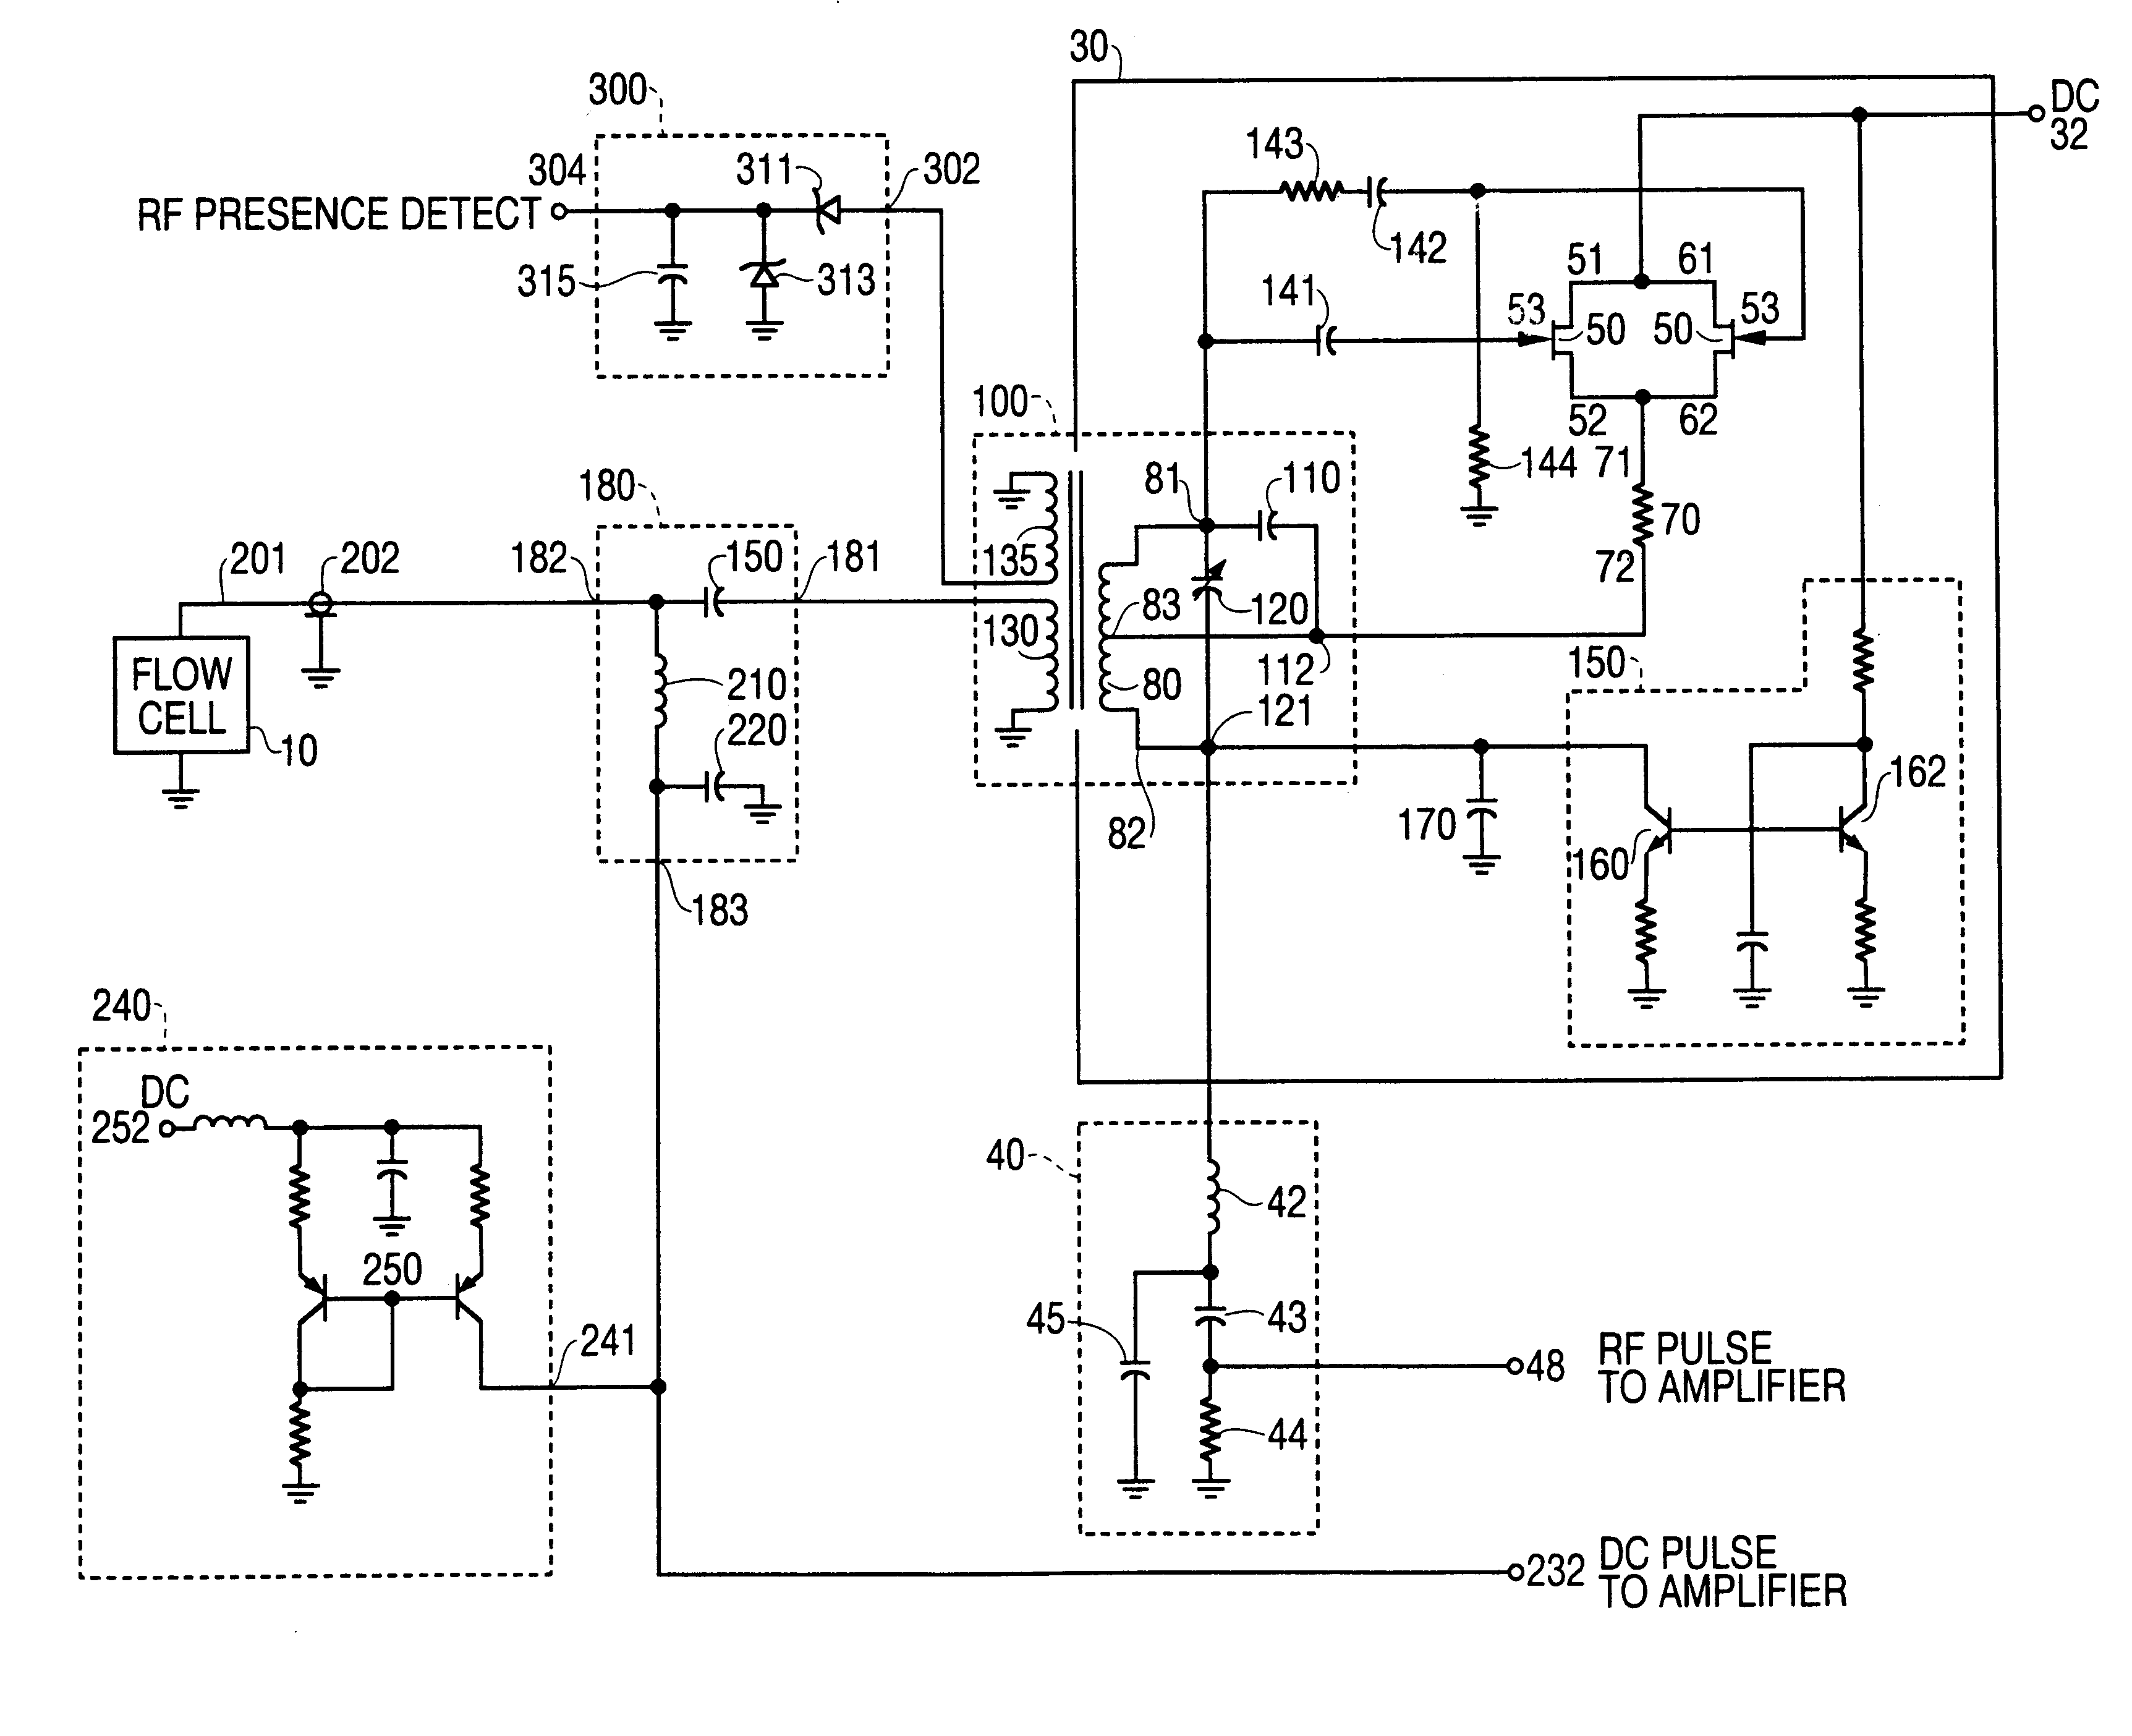 Solid state RF oscillator-detector for flow cytometer - schematic